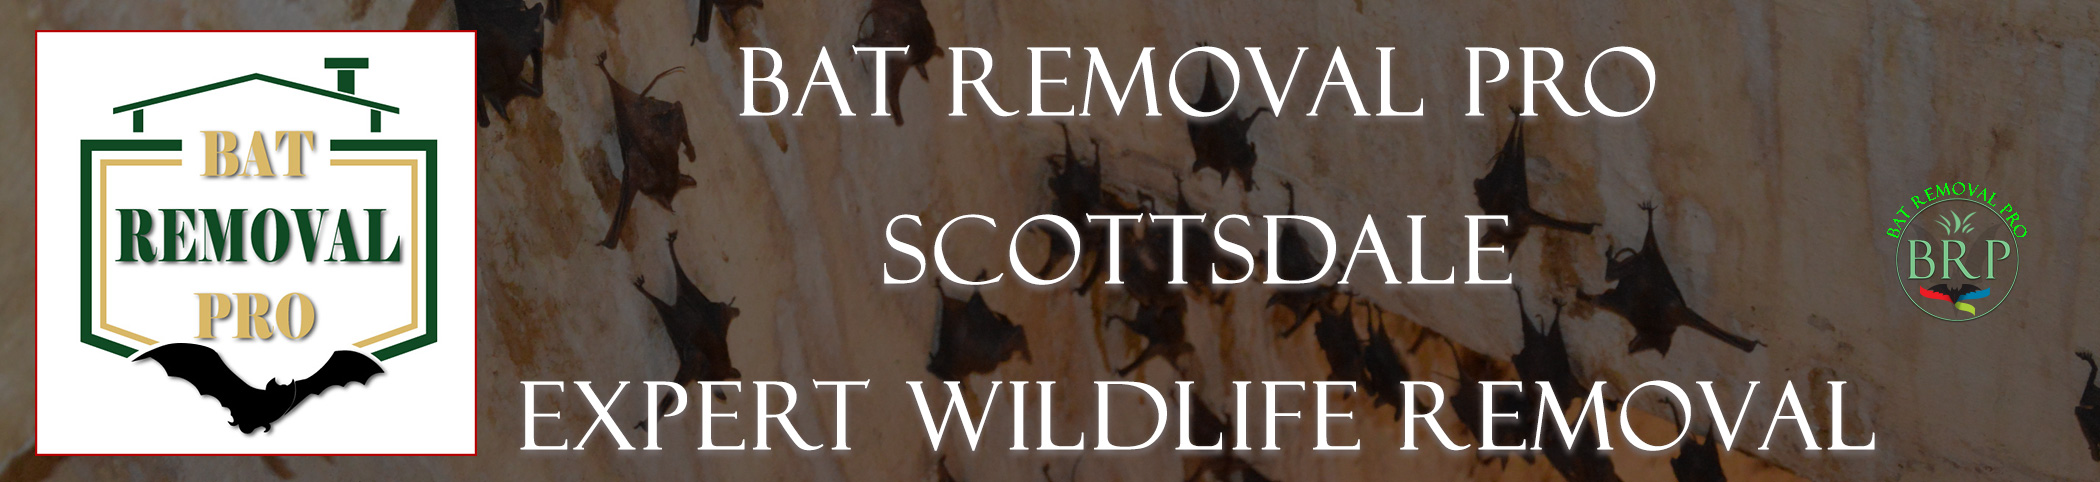 scottsdale_arizona_HEADER_IMAGE bat removal pro